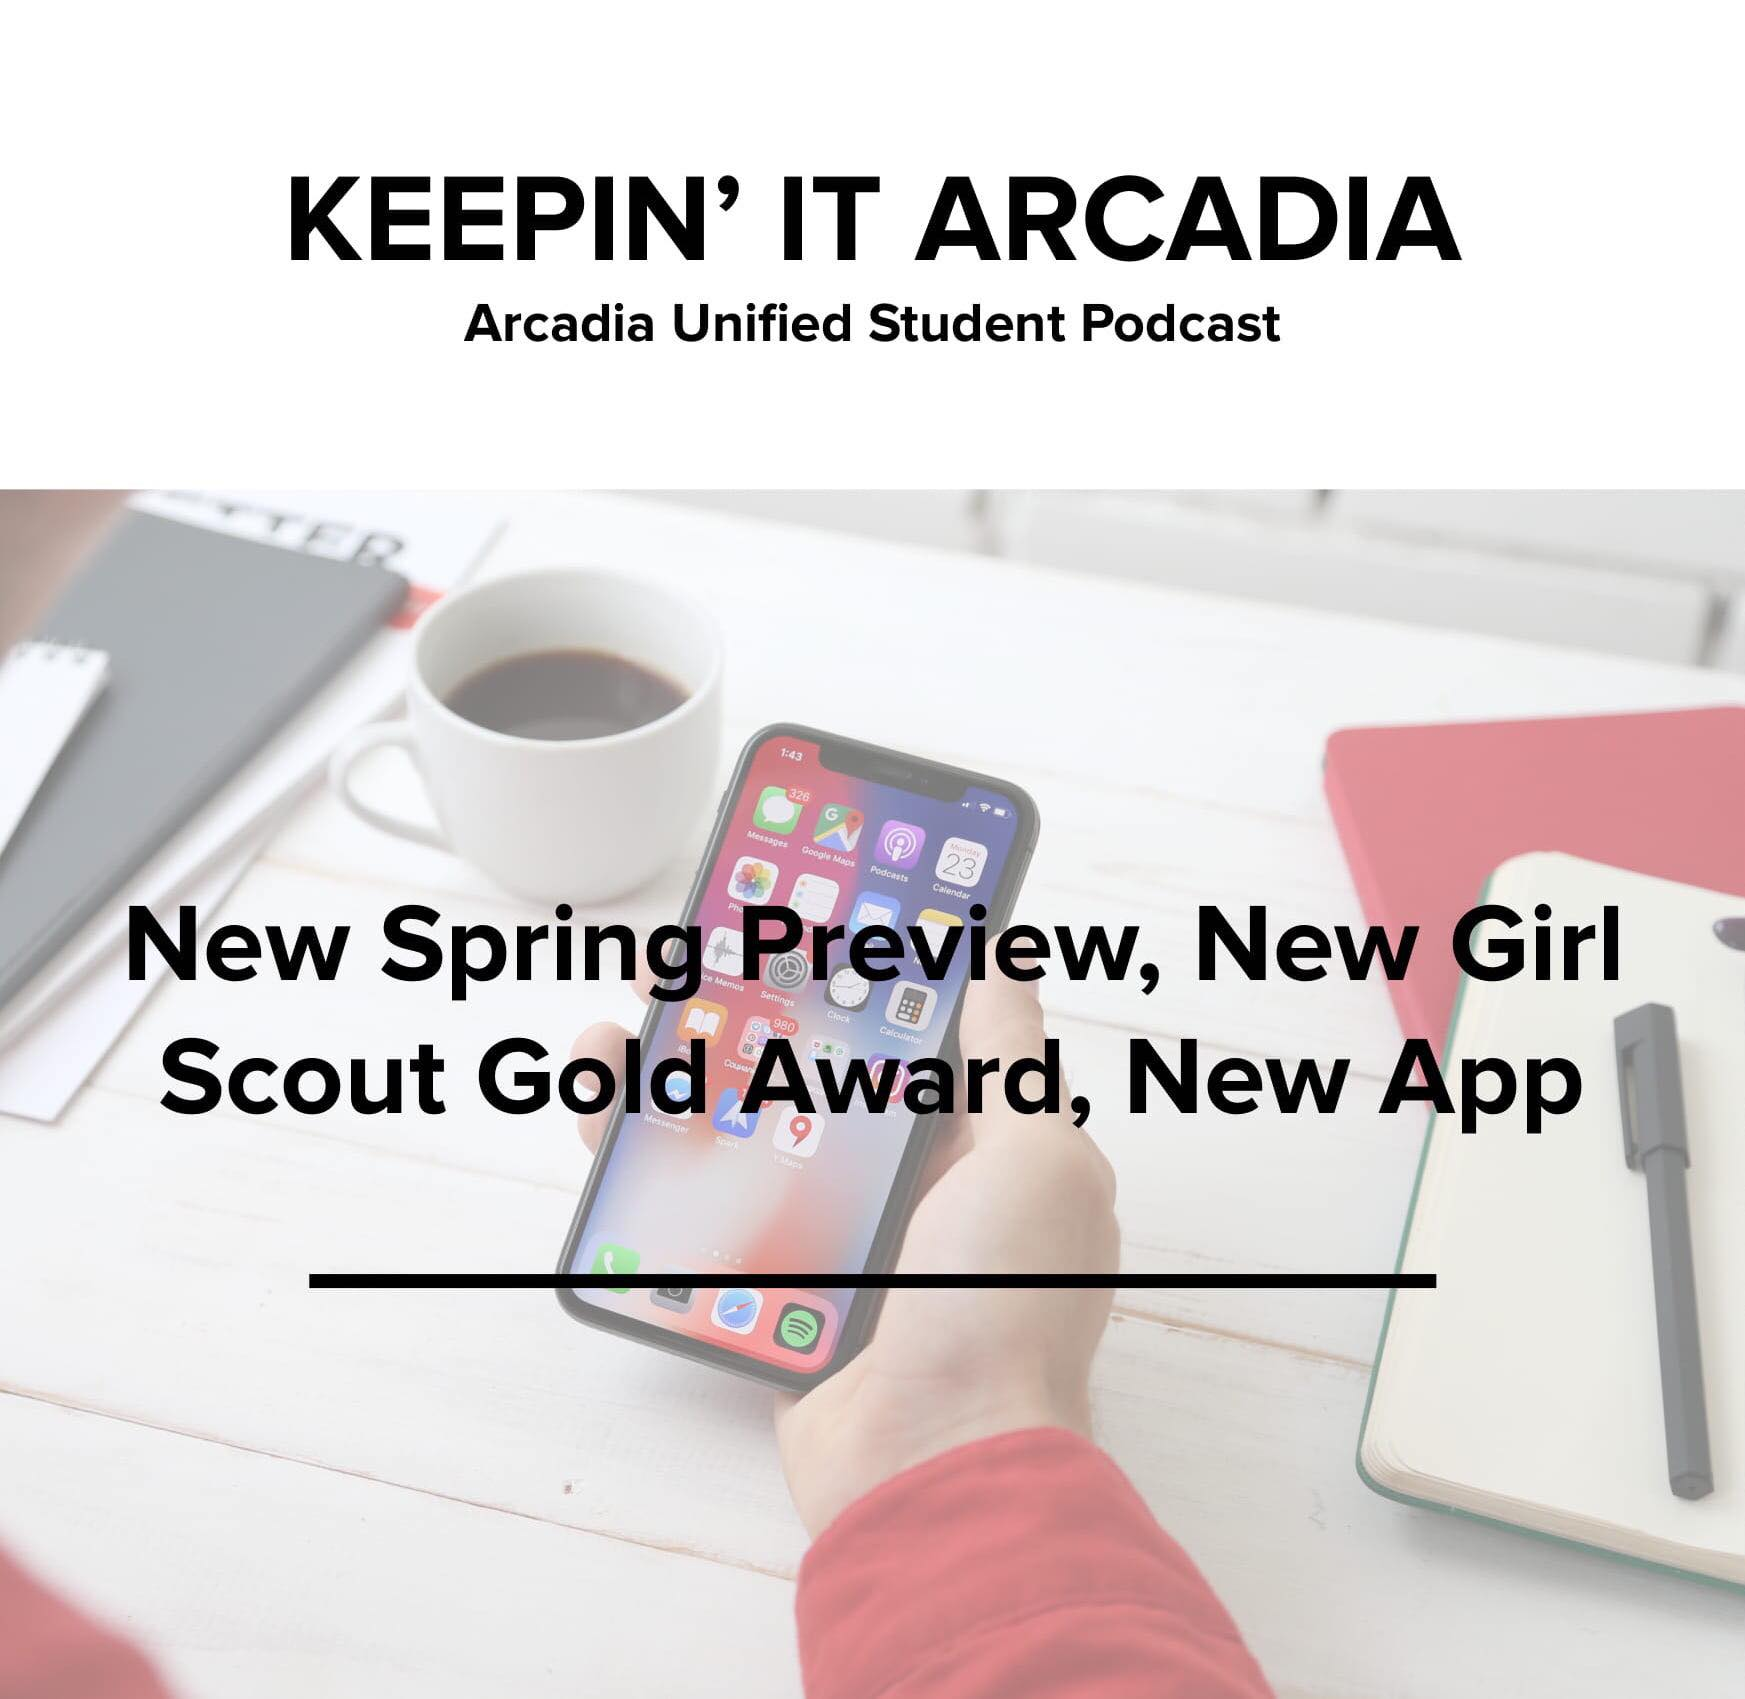 S2 #27 New Spring Preview, New Girl Scout Gold Award, New App!